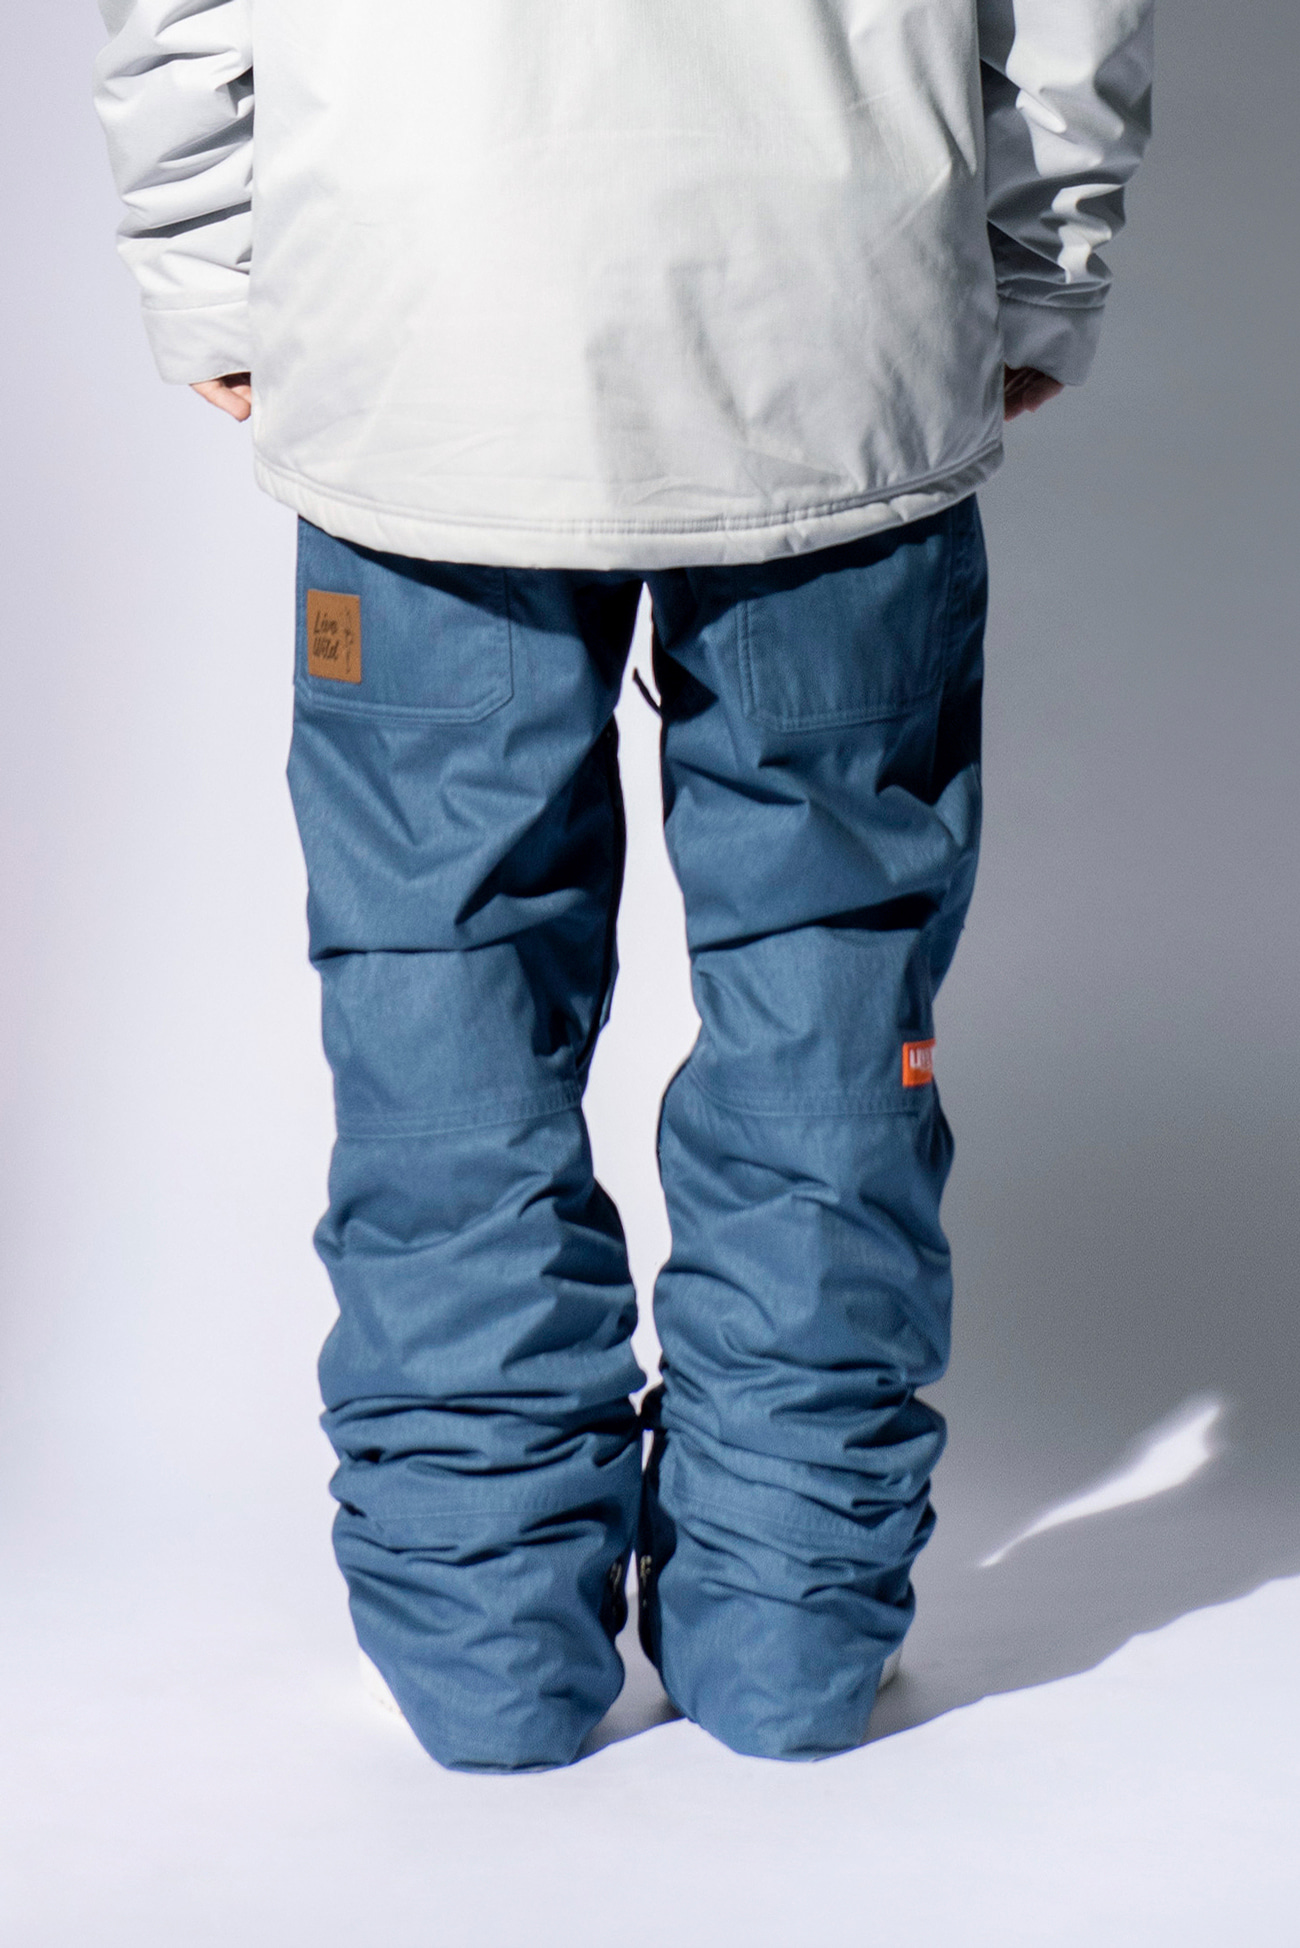 NOMAD pants - D.blueHOLIDAY OUTERWEAR